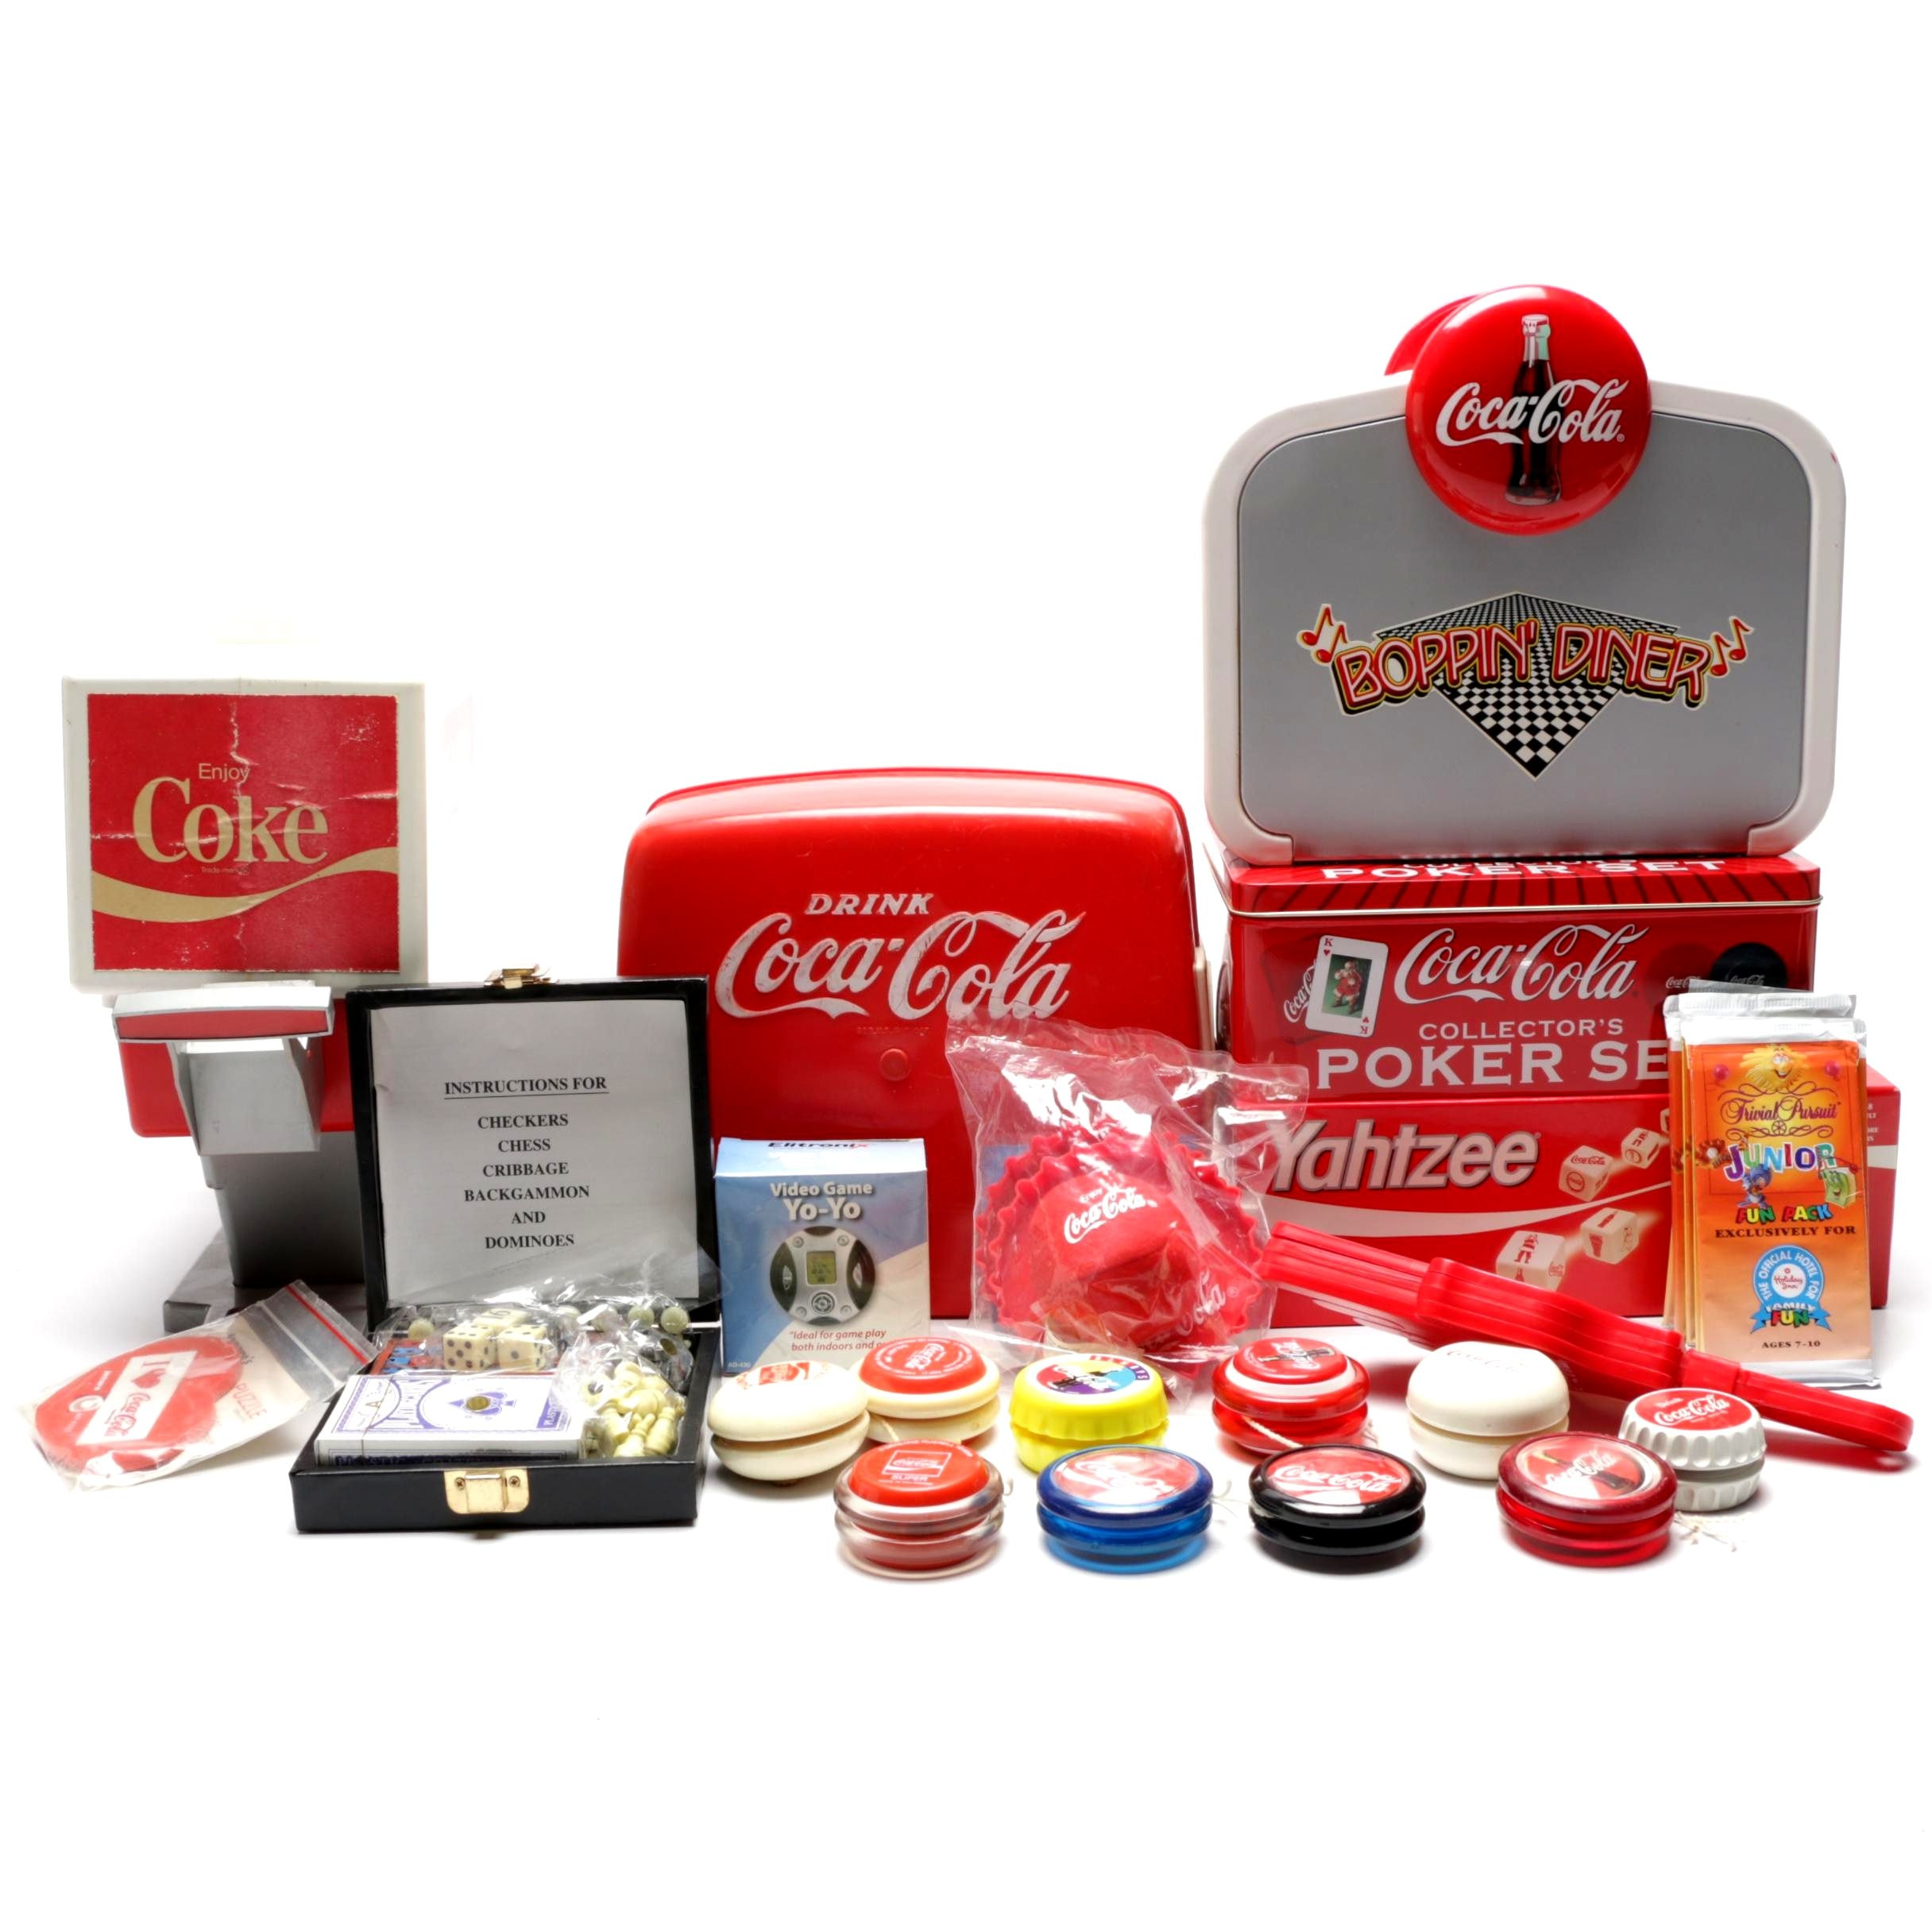 Coca-Cola Themed Games and Toys